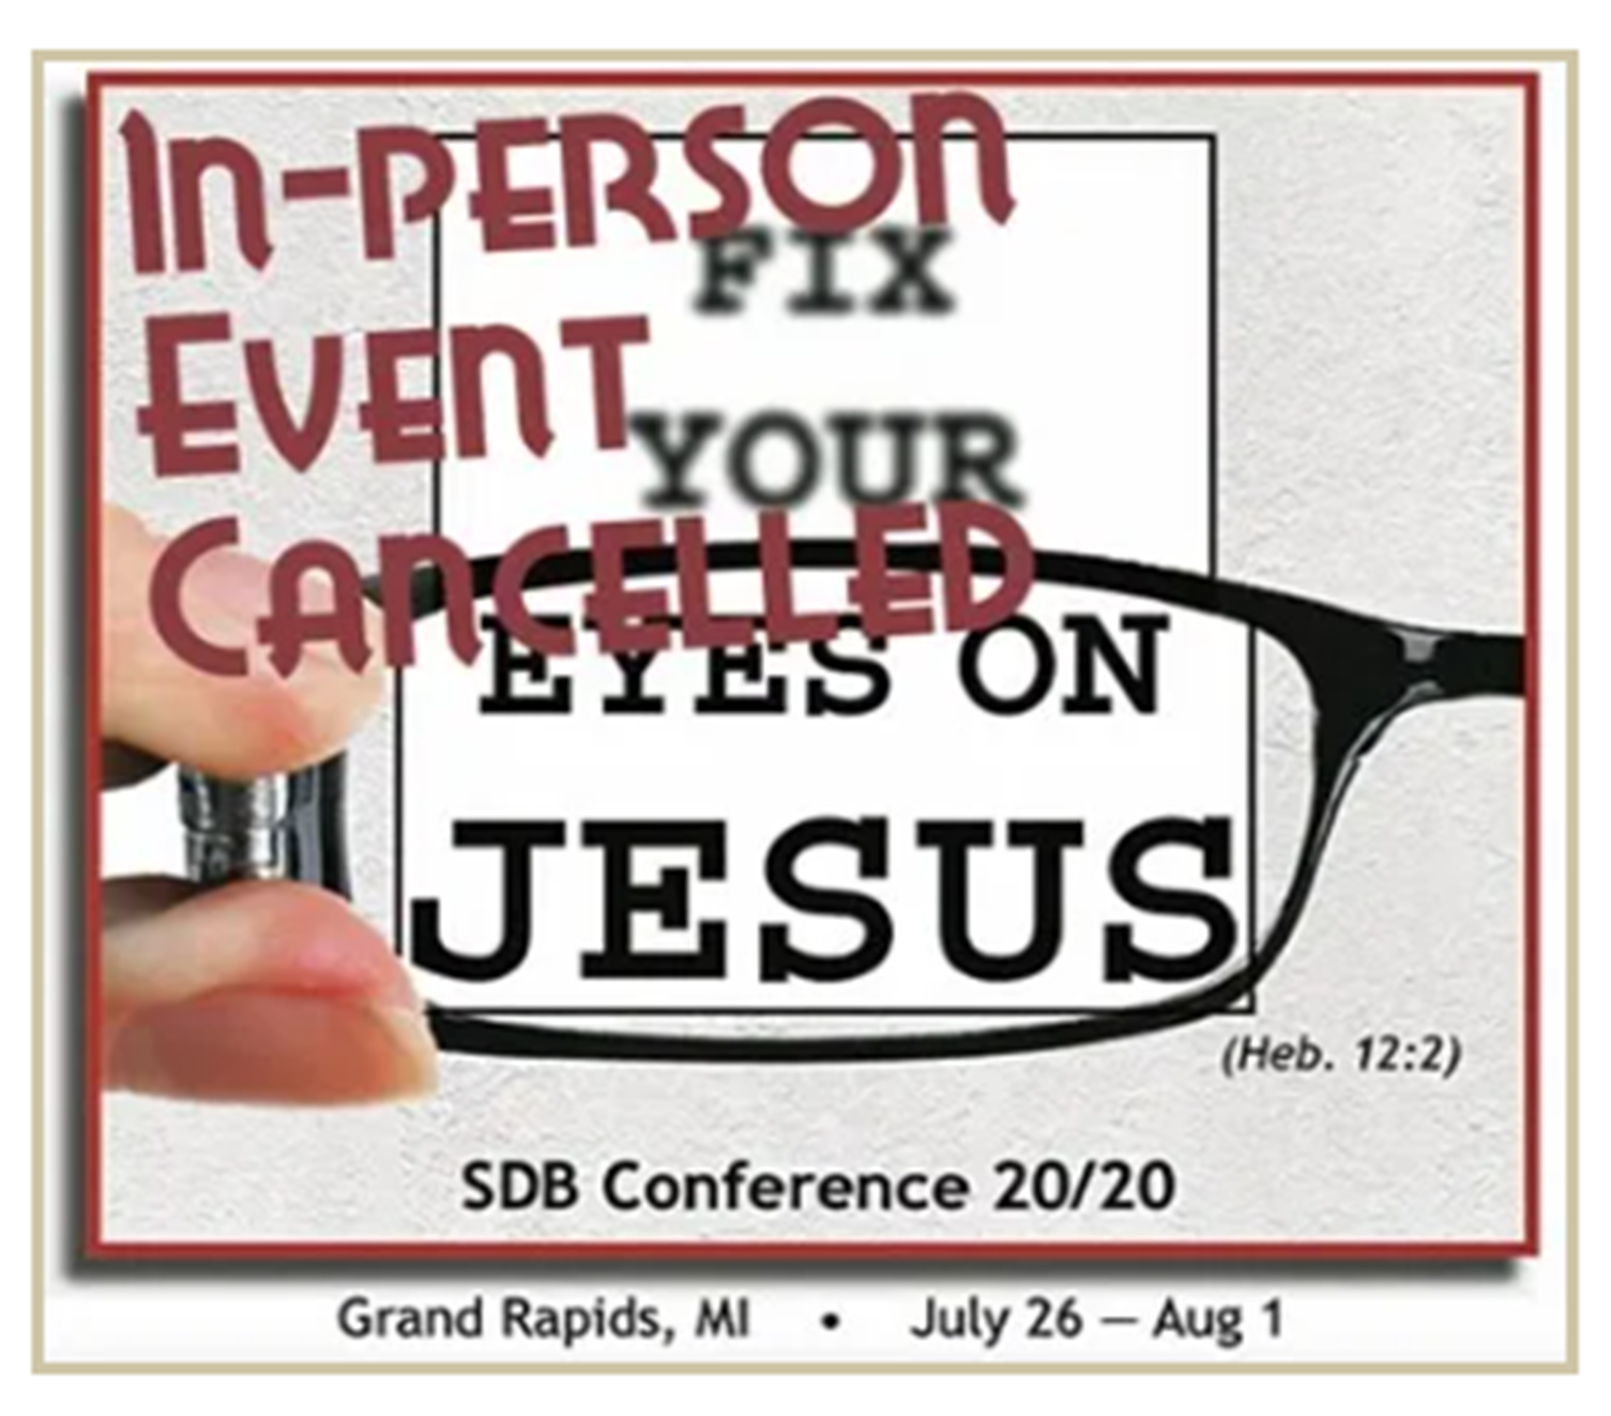 Thumbnail for the post titled: VIRTUAL CONFERENCE ACTIVITIES